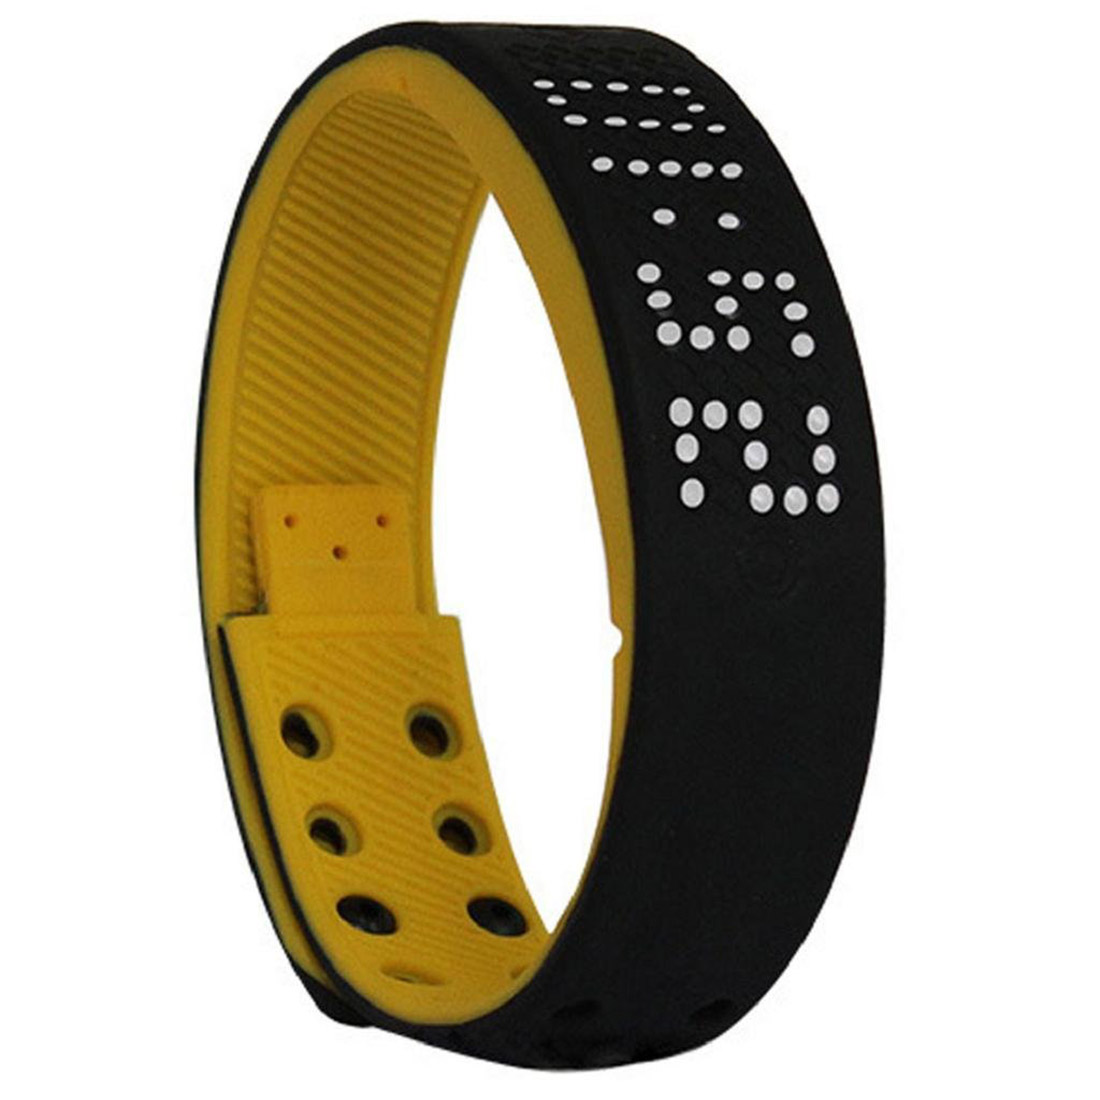 TW2 Smart Watch Bluetooth Smart Bracelet Monitor for iOS Android I